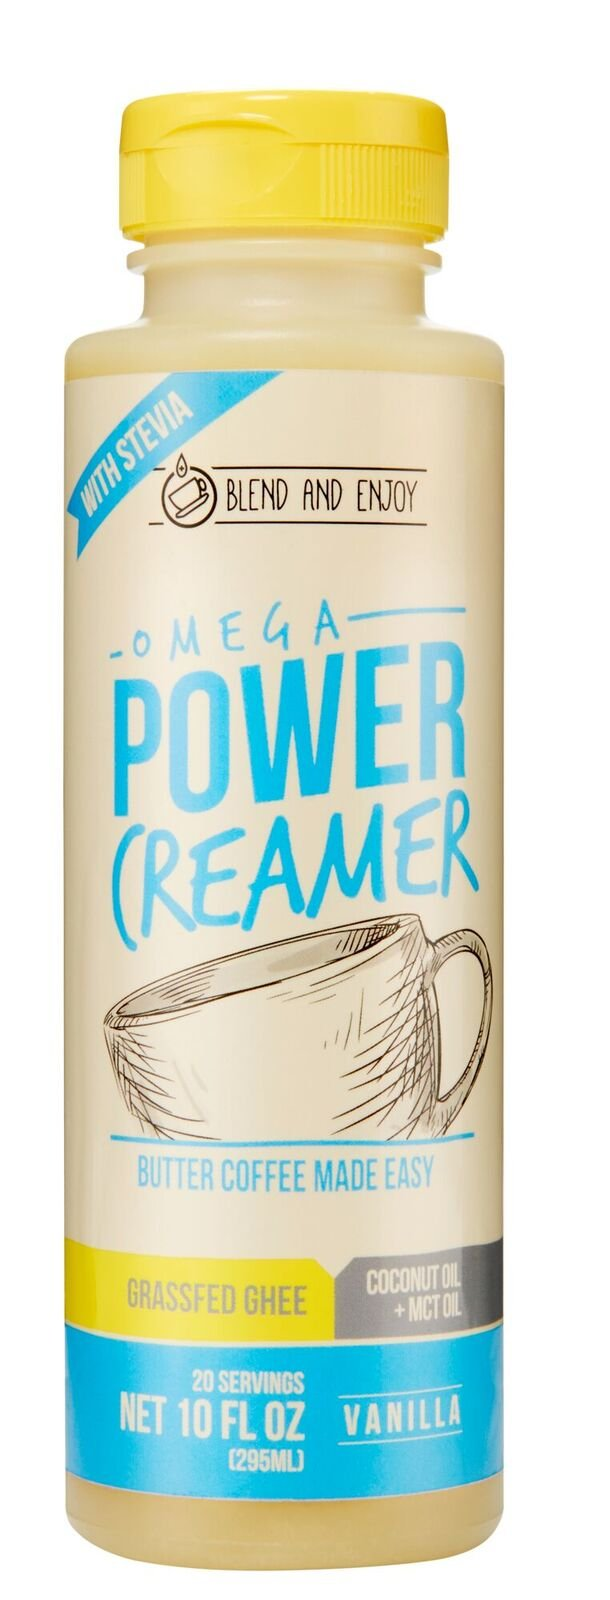 Omega PowerCreamer - VANILLA - Made with Grass-fed Organic Ghee, Organic Coconut Oil, MCT Oil from 100% C8/C10 | Keto, Paleo, Sugar Free 10 fl oz (20 servings) | Butter Coffee Blend